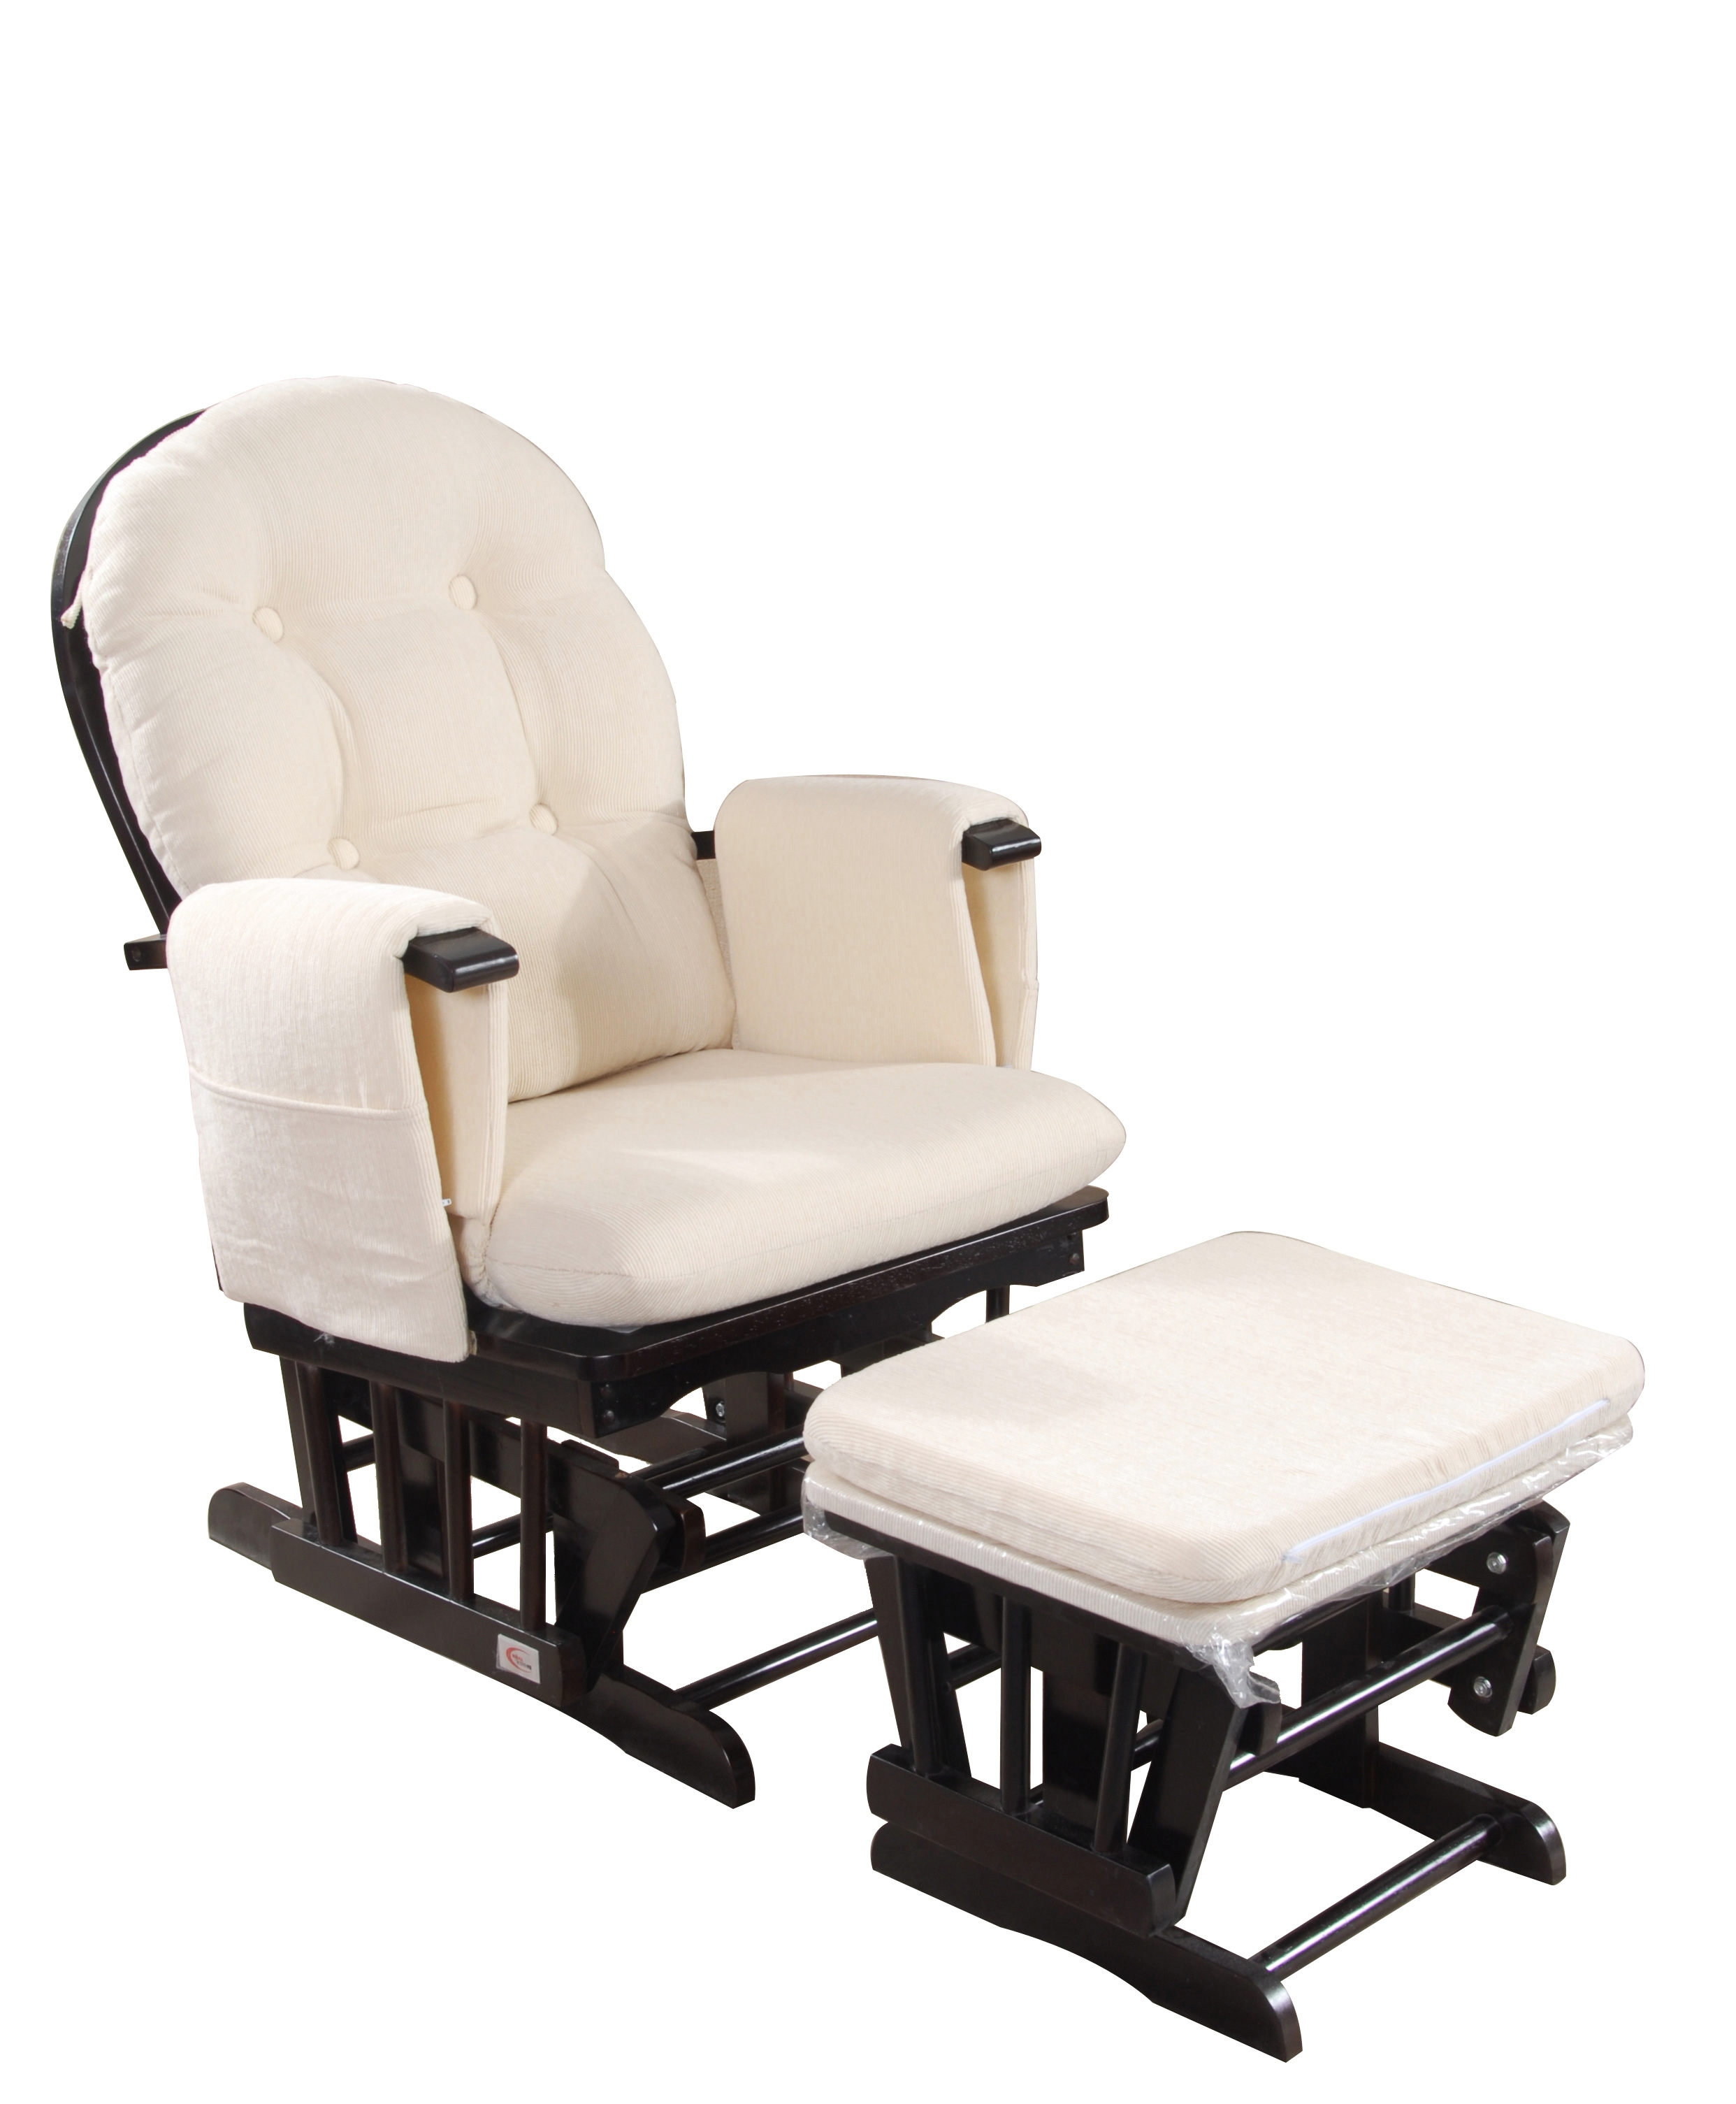 of nursery living gliders size chair glider difference with and dimensions furniture enjoy room movement full chairs the double rocking